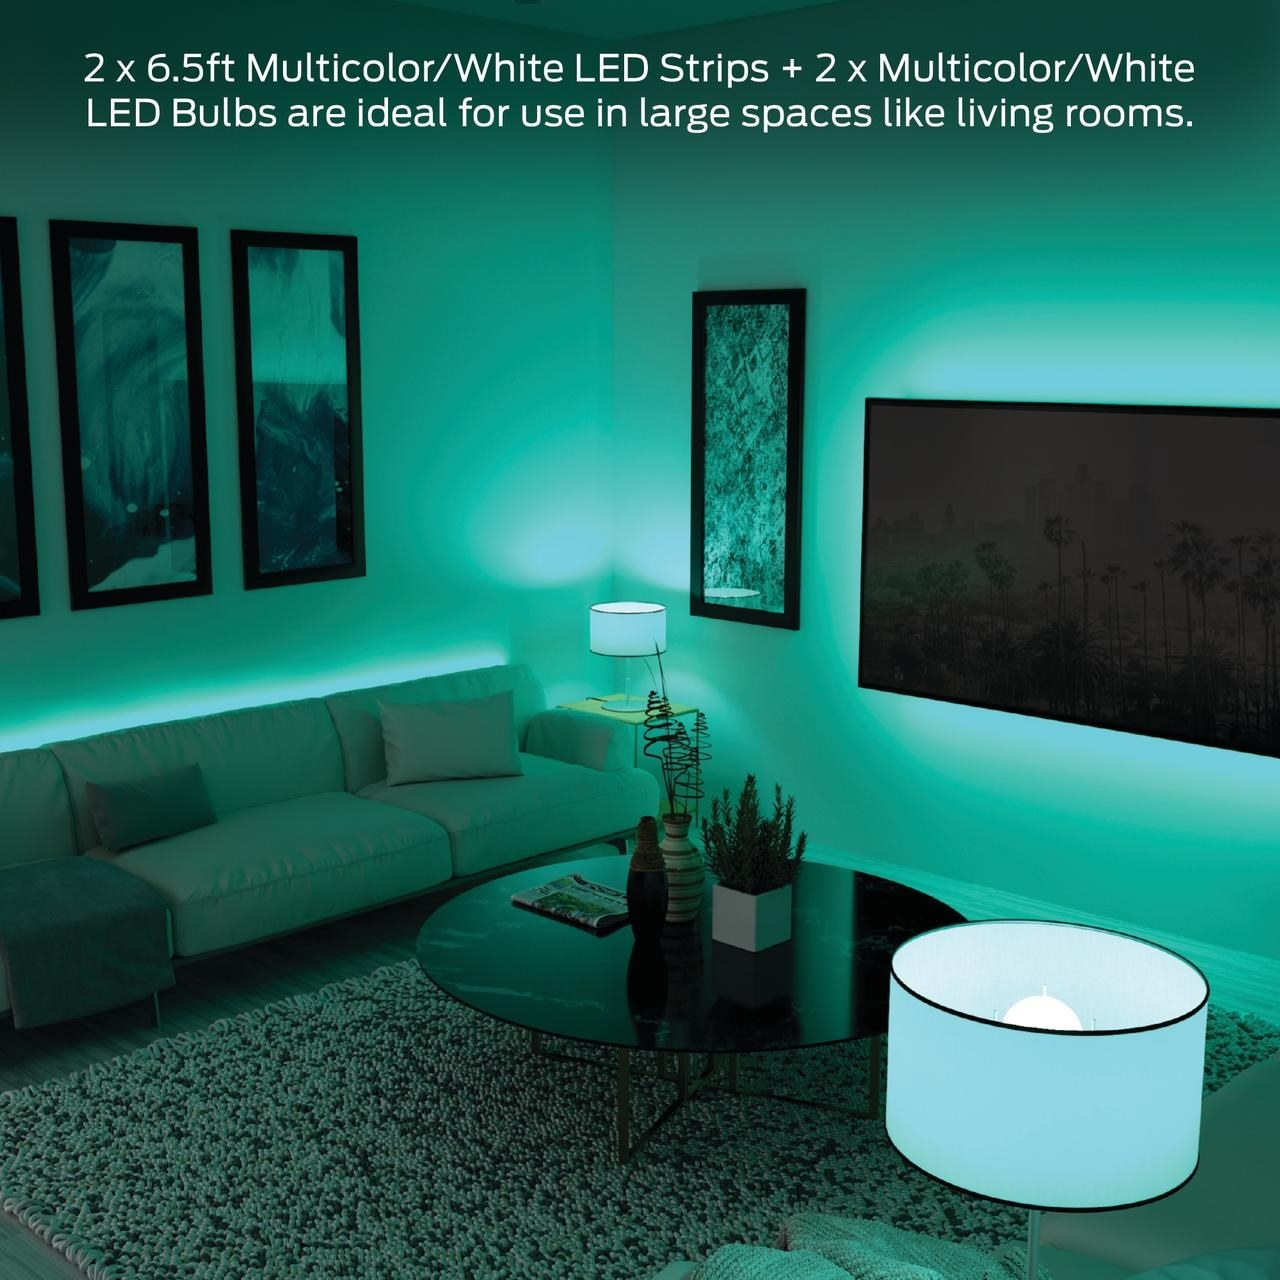 The lighting kit omitting green light throughout a living room